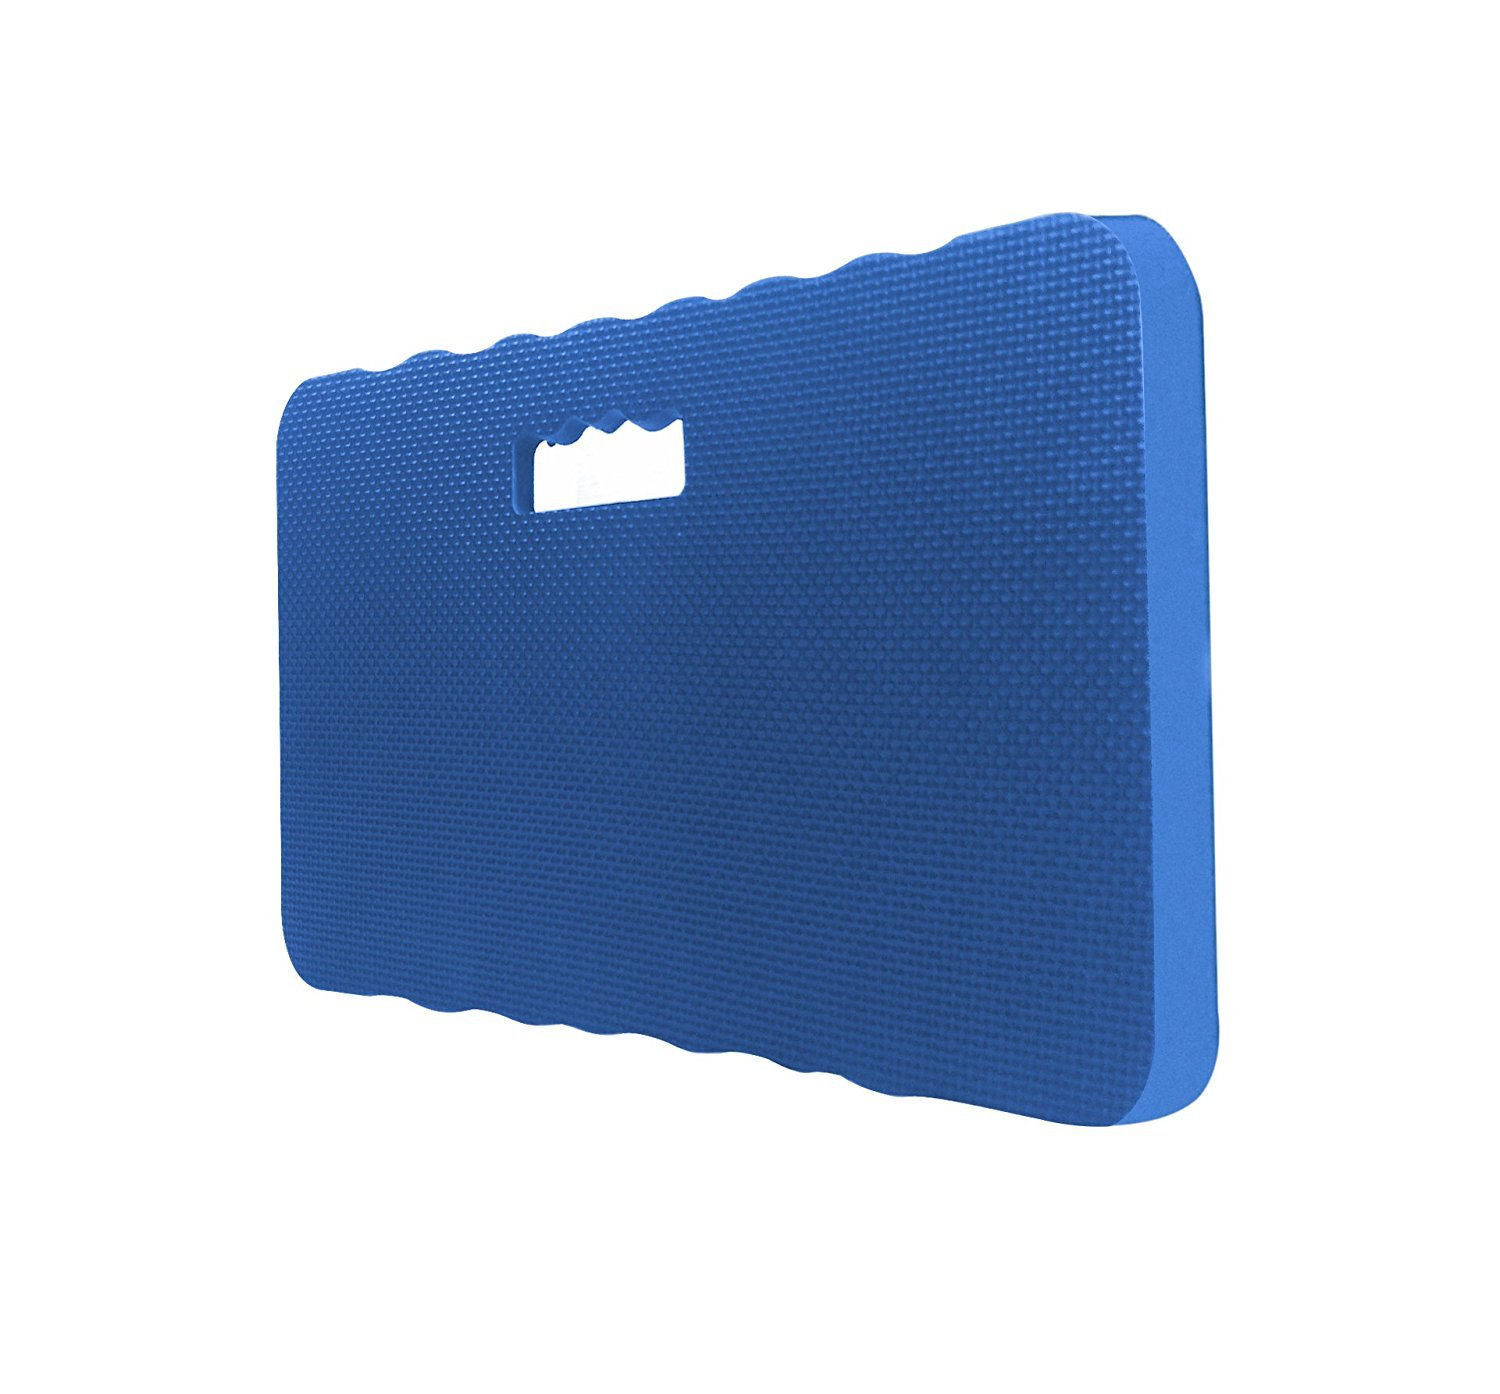 IUME Heavy Duty Thick Kneeling Pad Garden Kneeler for Gardening Knee Pad Bath Kneeler Foam Kneeling Mat Exercise for Yoga Baby Bath Prayers Thickness 1.57'' Extra Large 18IN x 11IN Blue